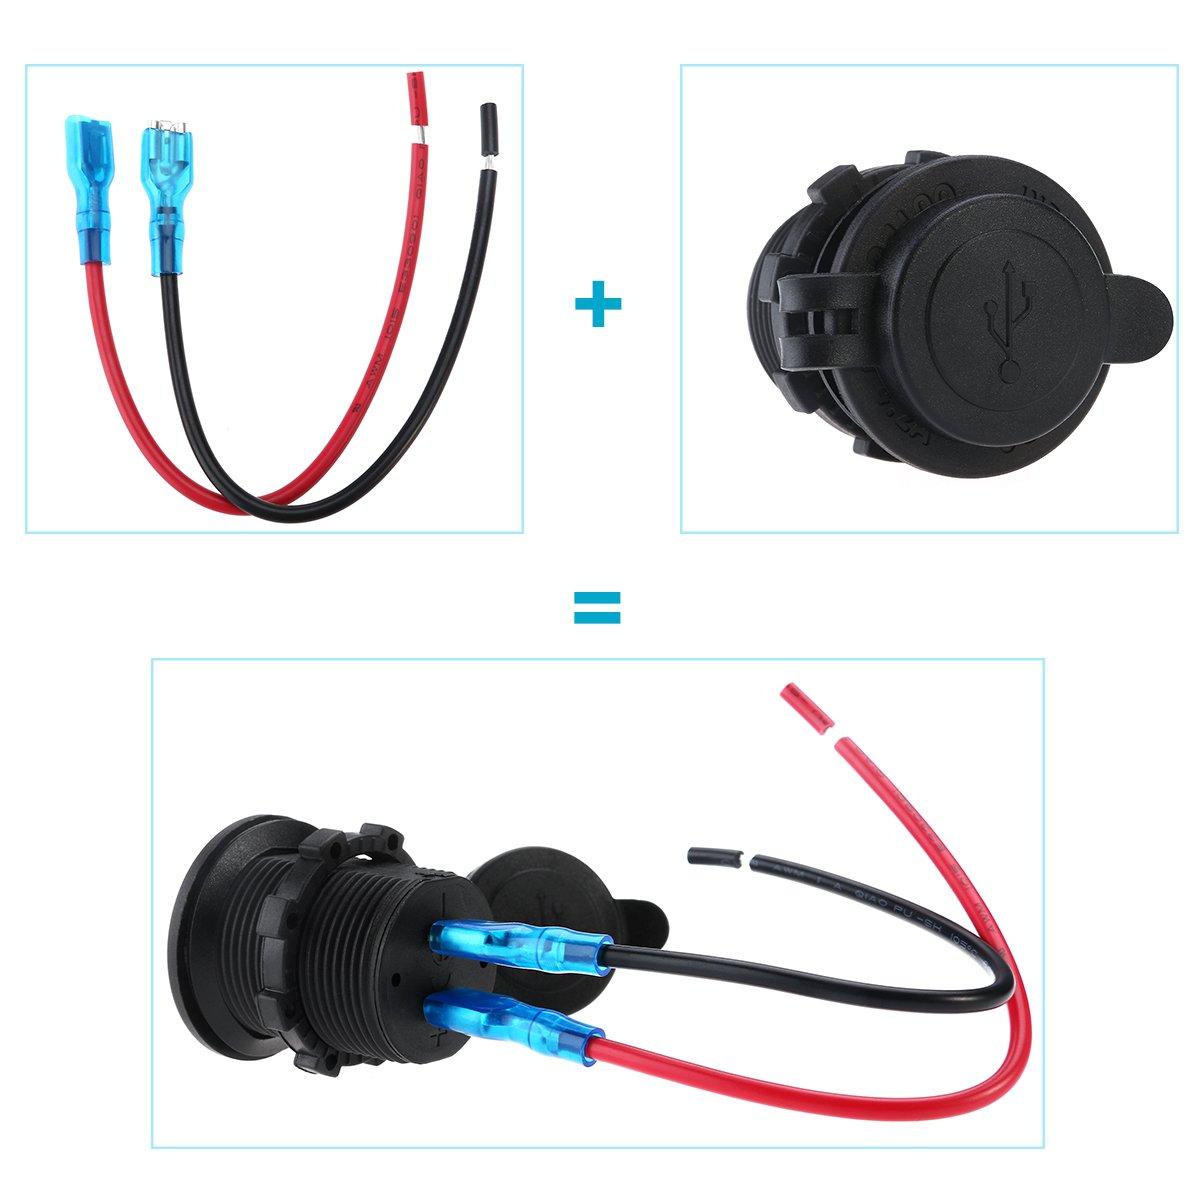 U1336265145U5276 Blue Light WINOMO Dual USB 4.2A 5V Socket Charger 12//24V Waterproof Power Outlet for Auto Car Motorcycle